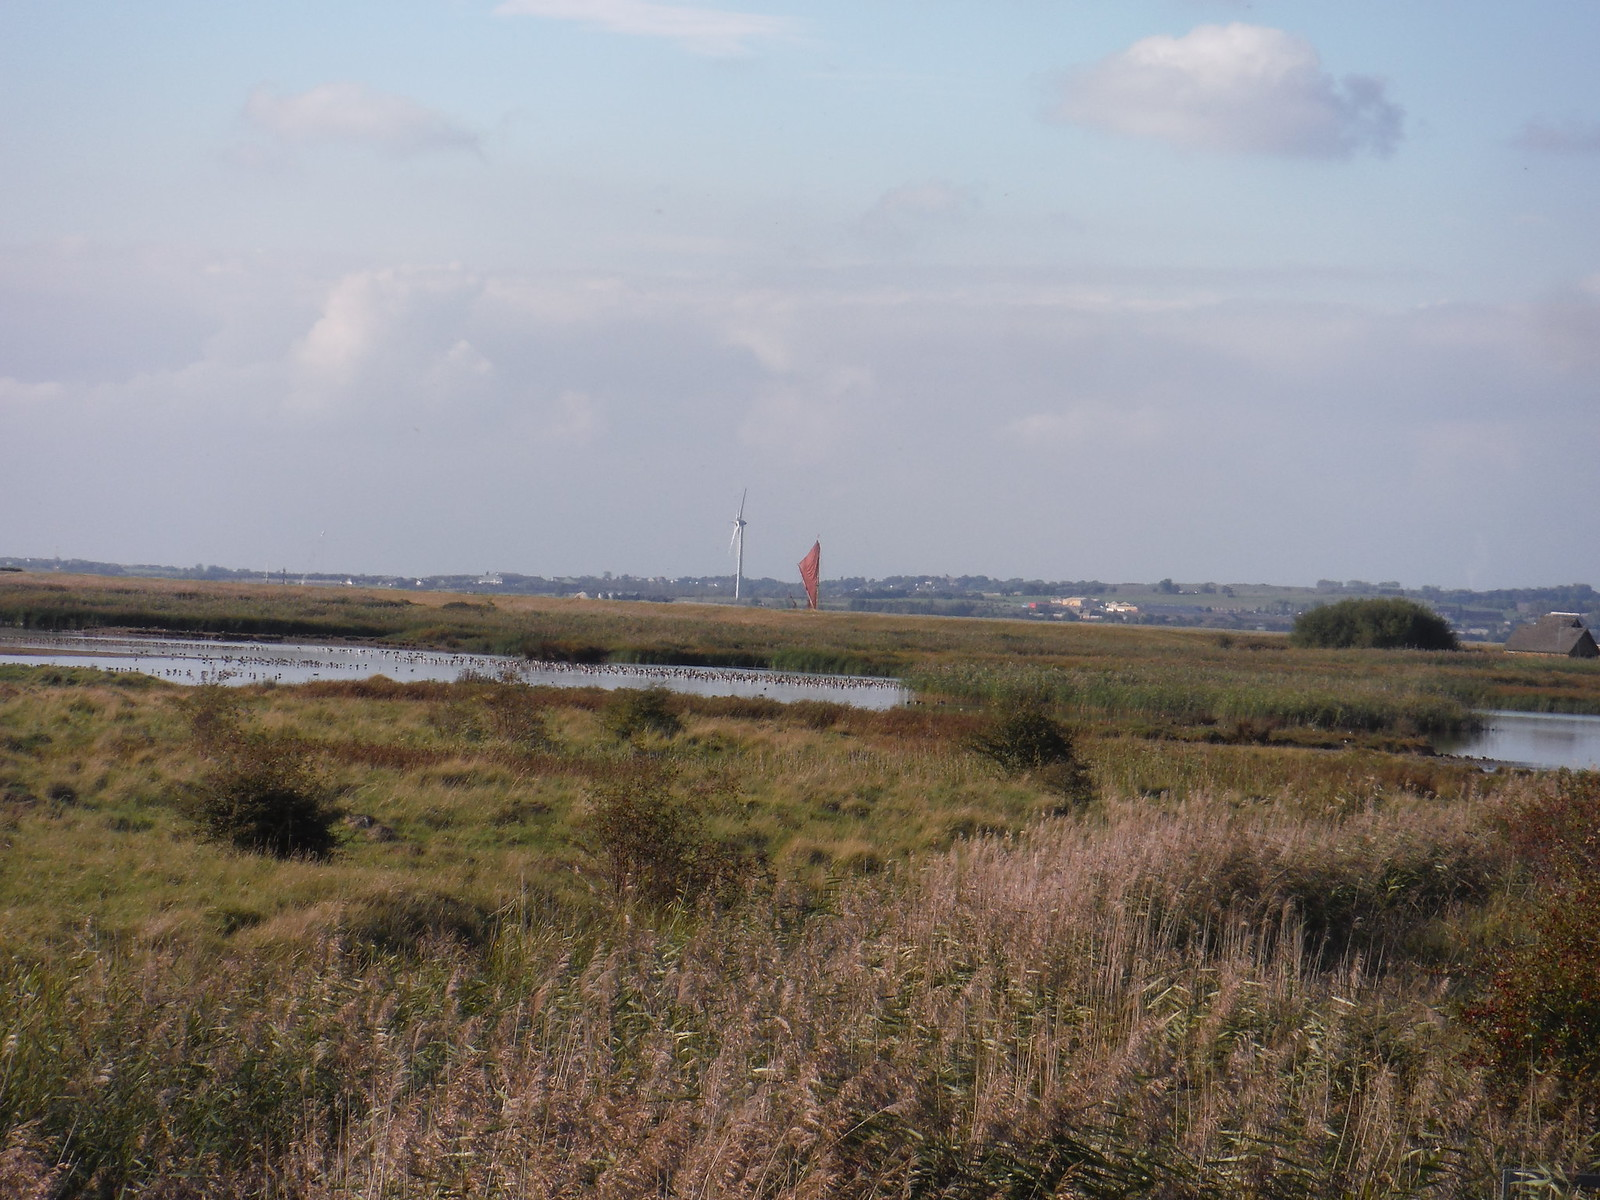 Thames Barge on Horizon, Oare Marshes Nature Reserve SWC Walk 299 - Teynham to Faversham